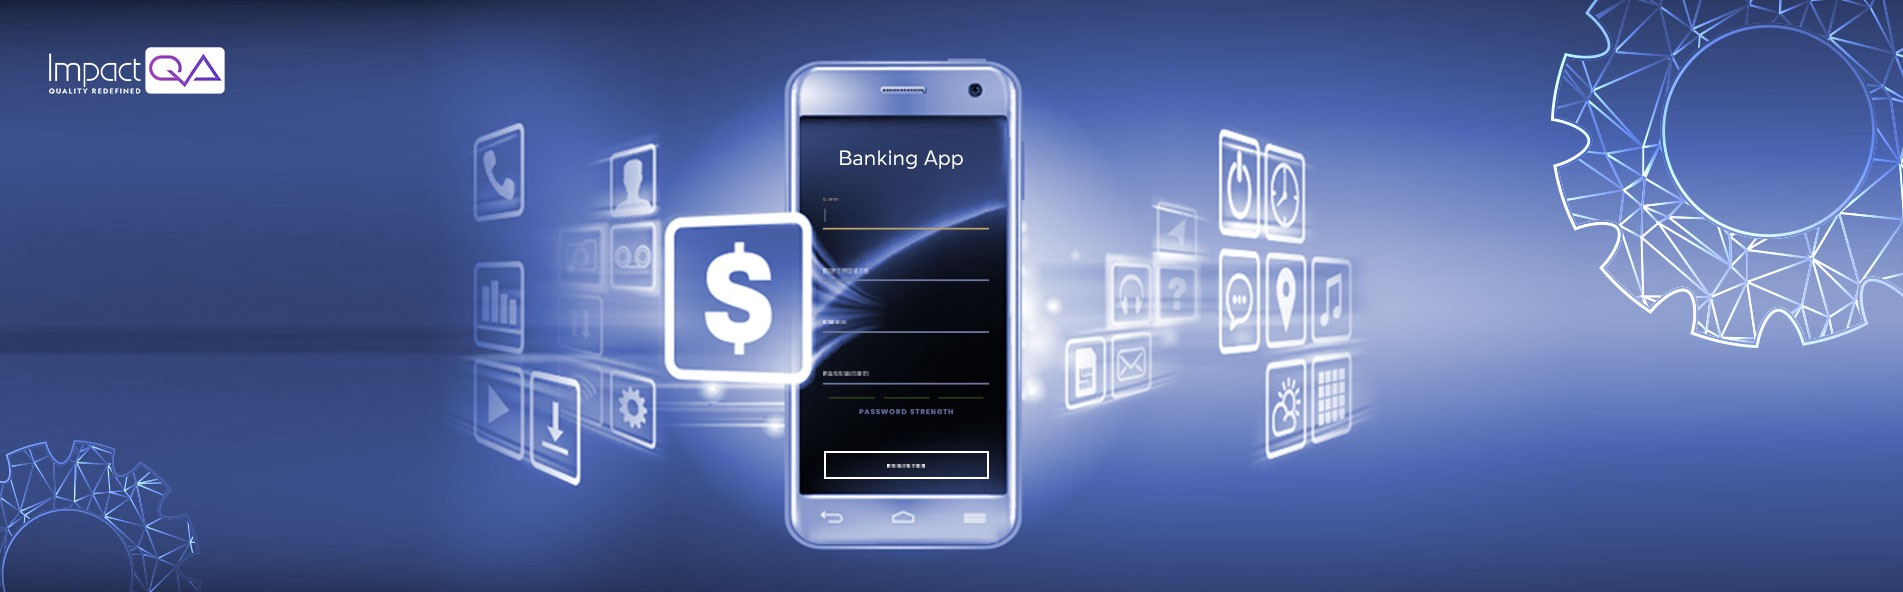 ImpactQA—Why is it Essential to Test Banking Applications?